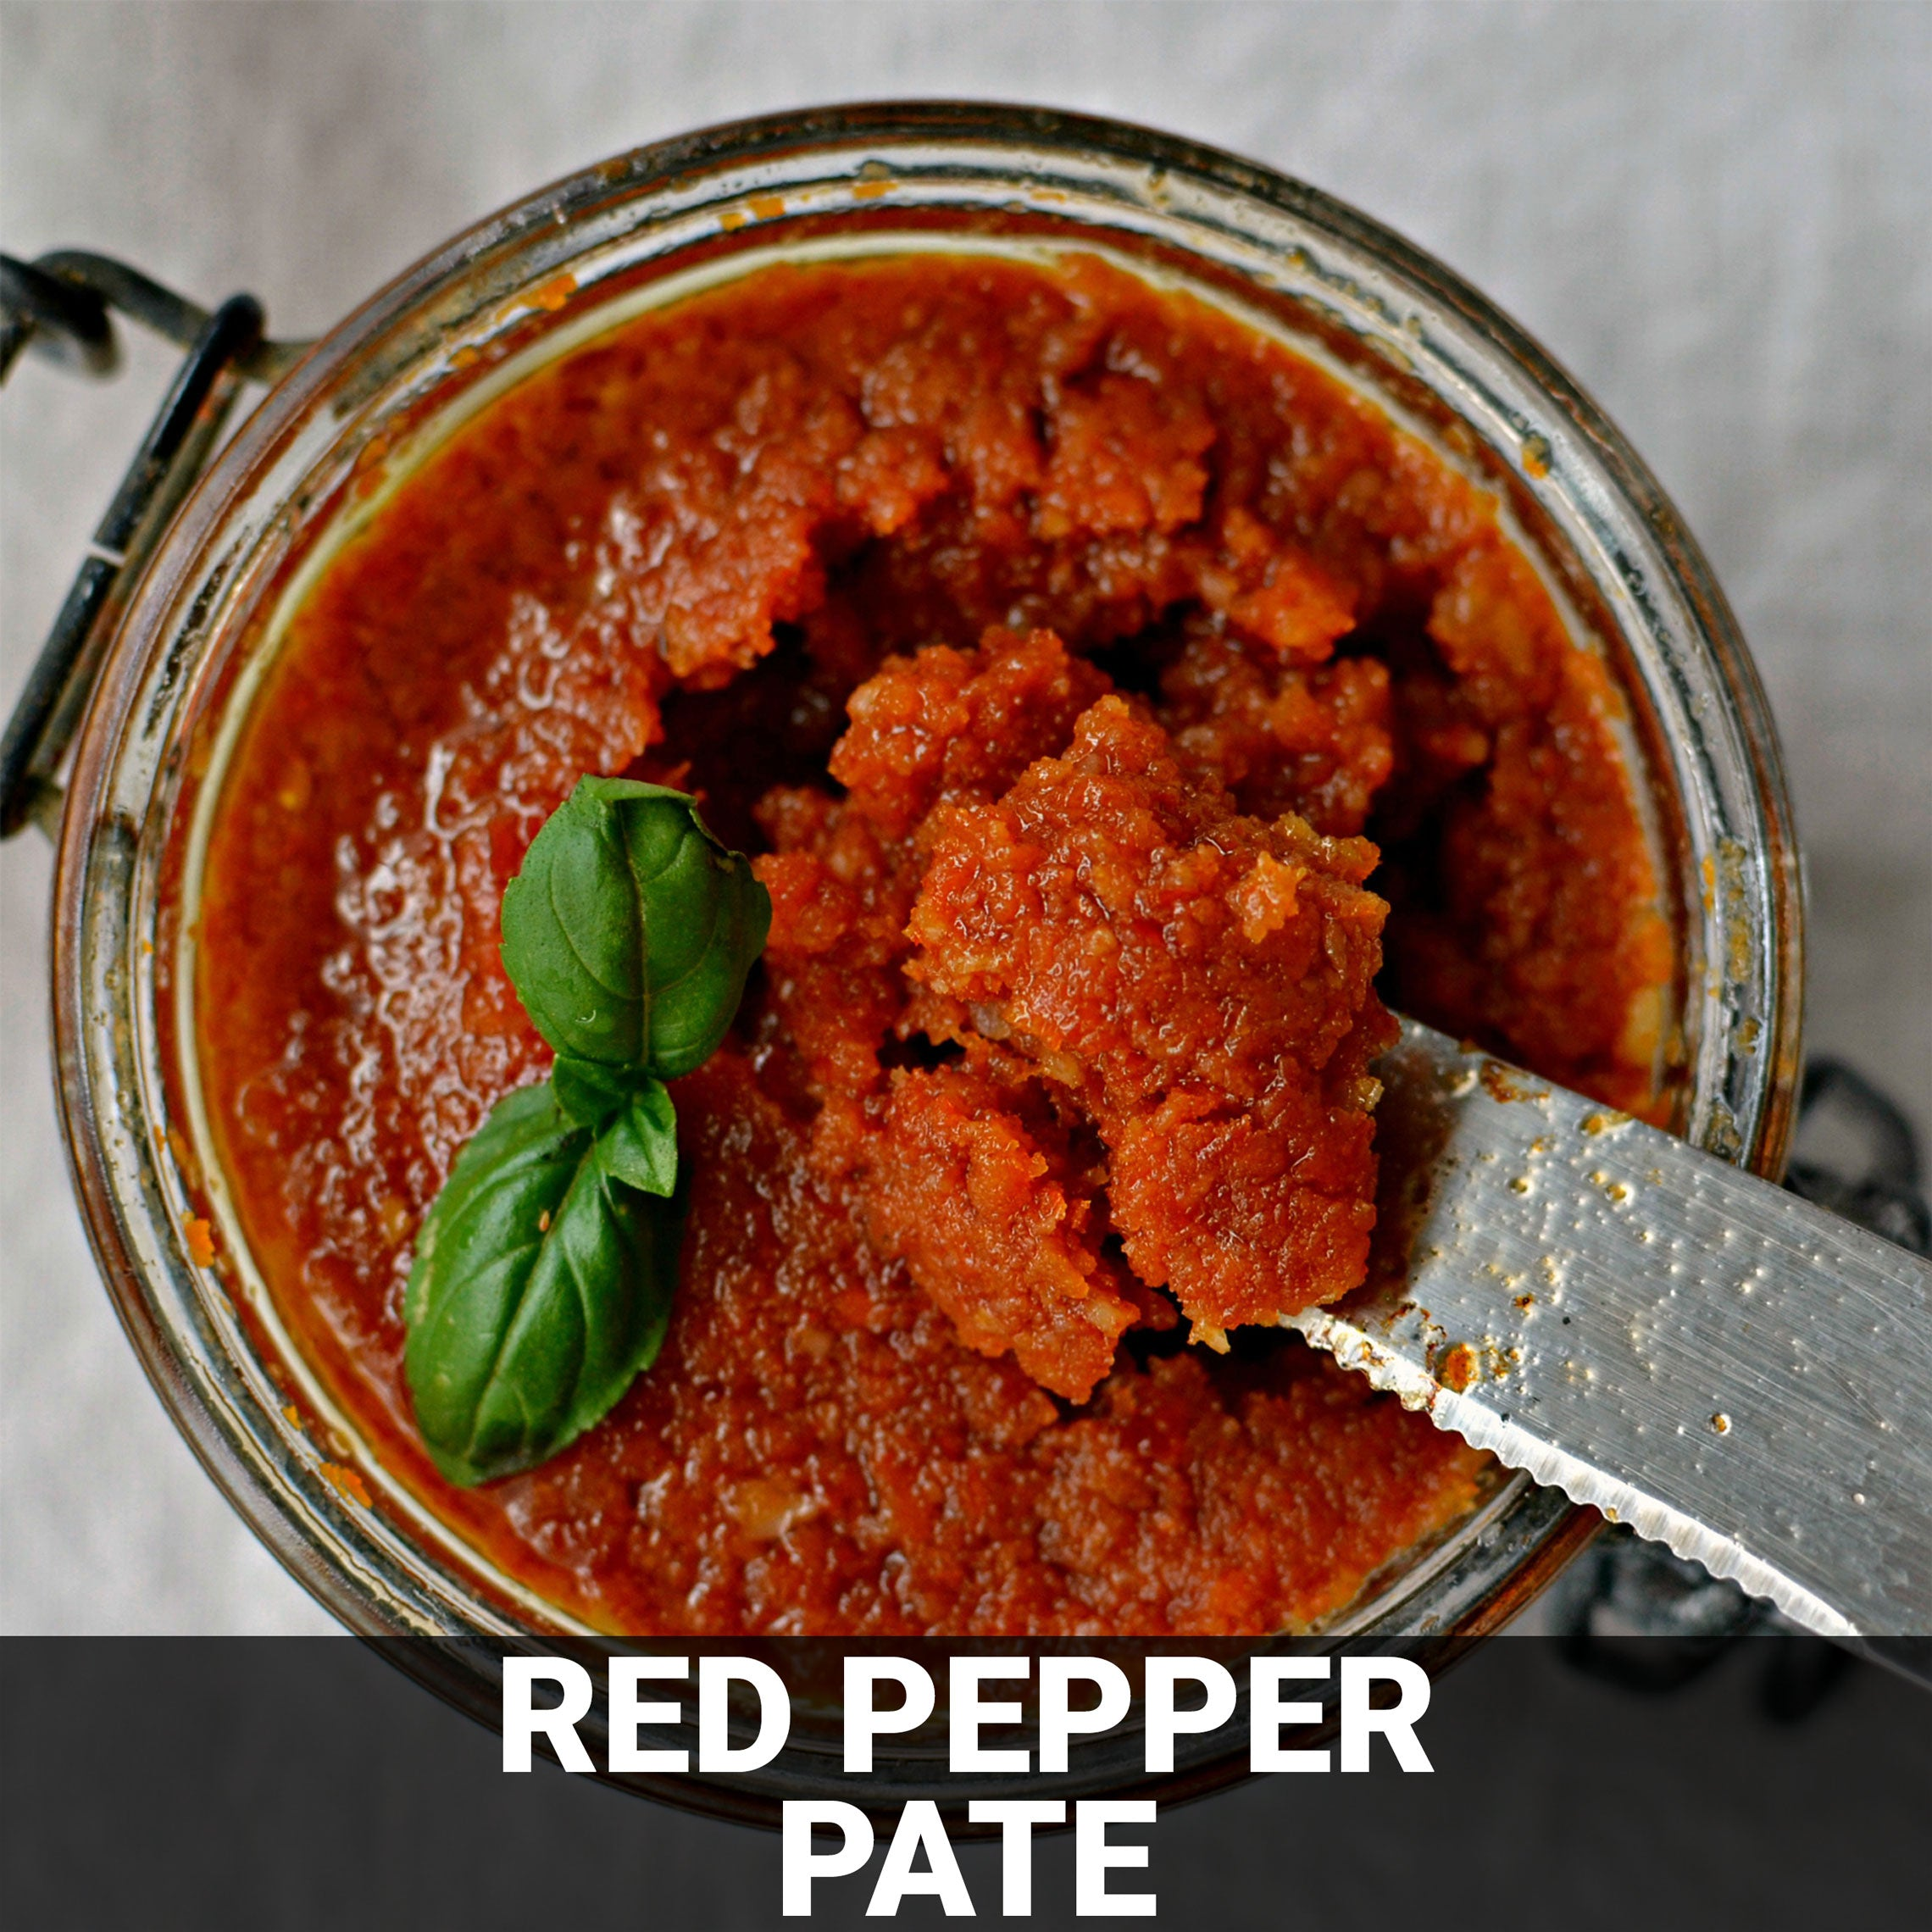 Red Pepper Pate' Recipe - Foods Alive